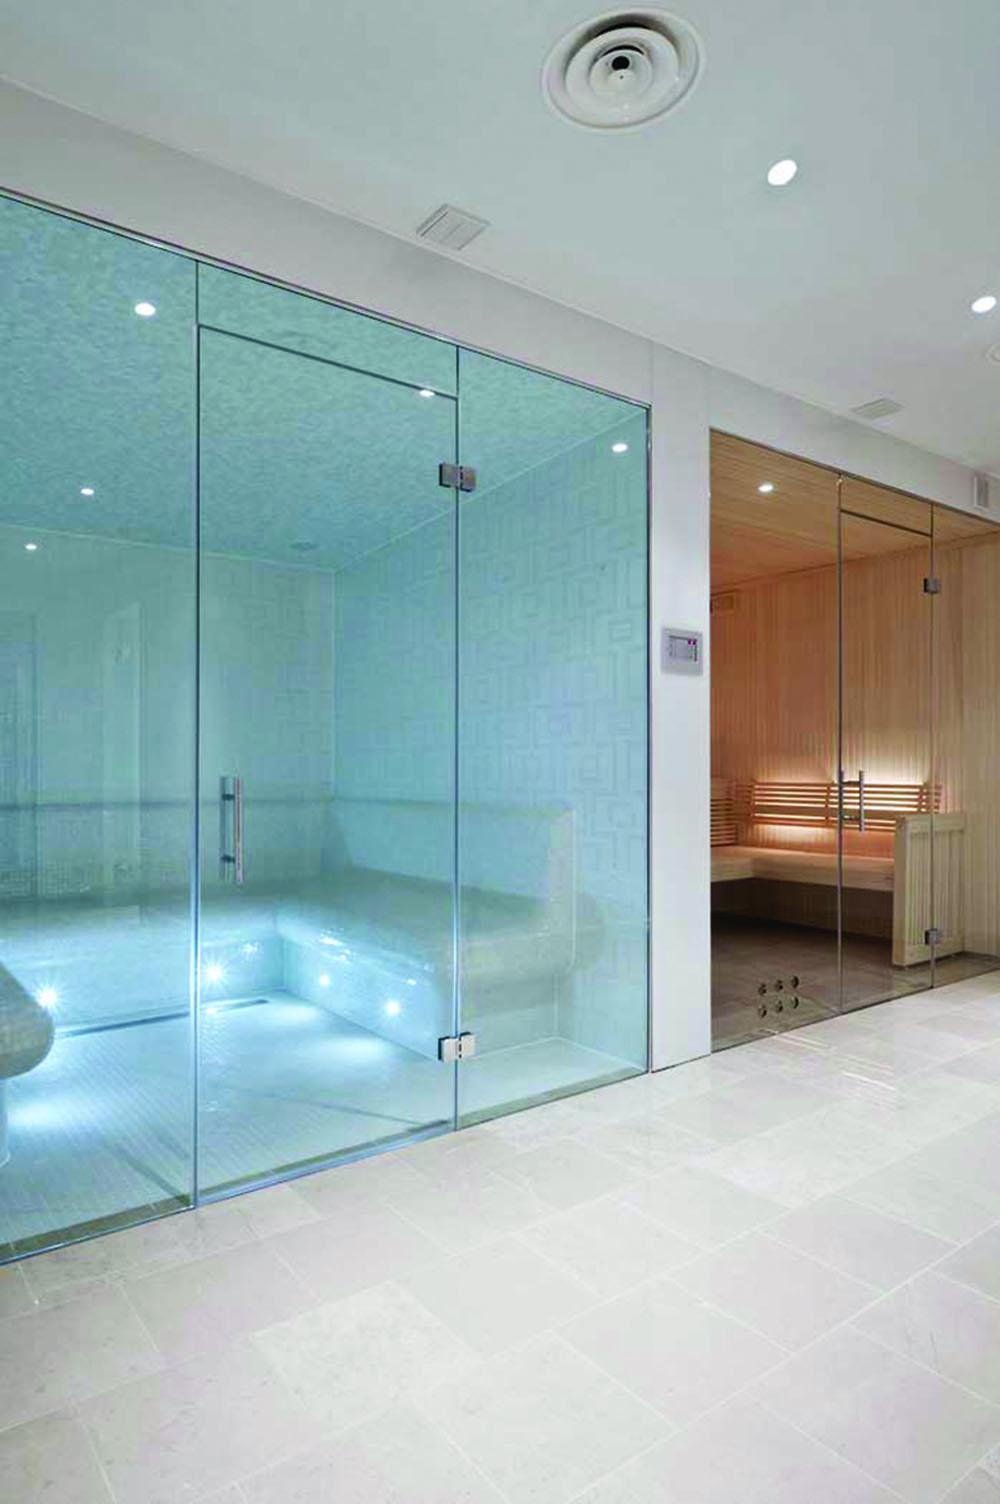 Frameless glass steam rooms sauna screens glasstrends take a look through our portfolio below for inspiration on steam room and sauna screens eventelaan Images